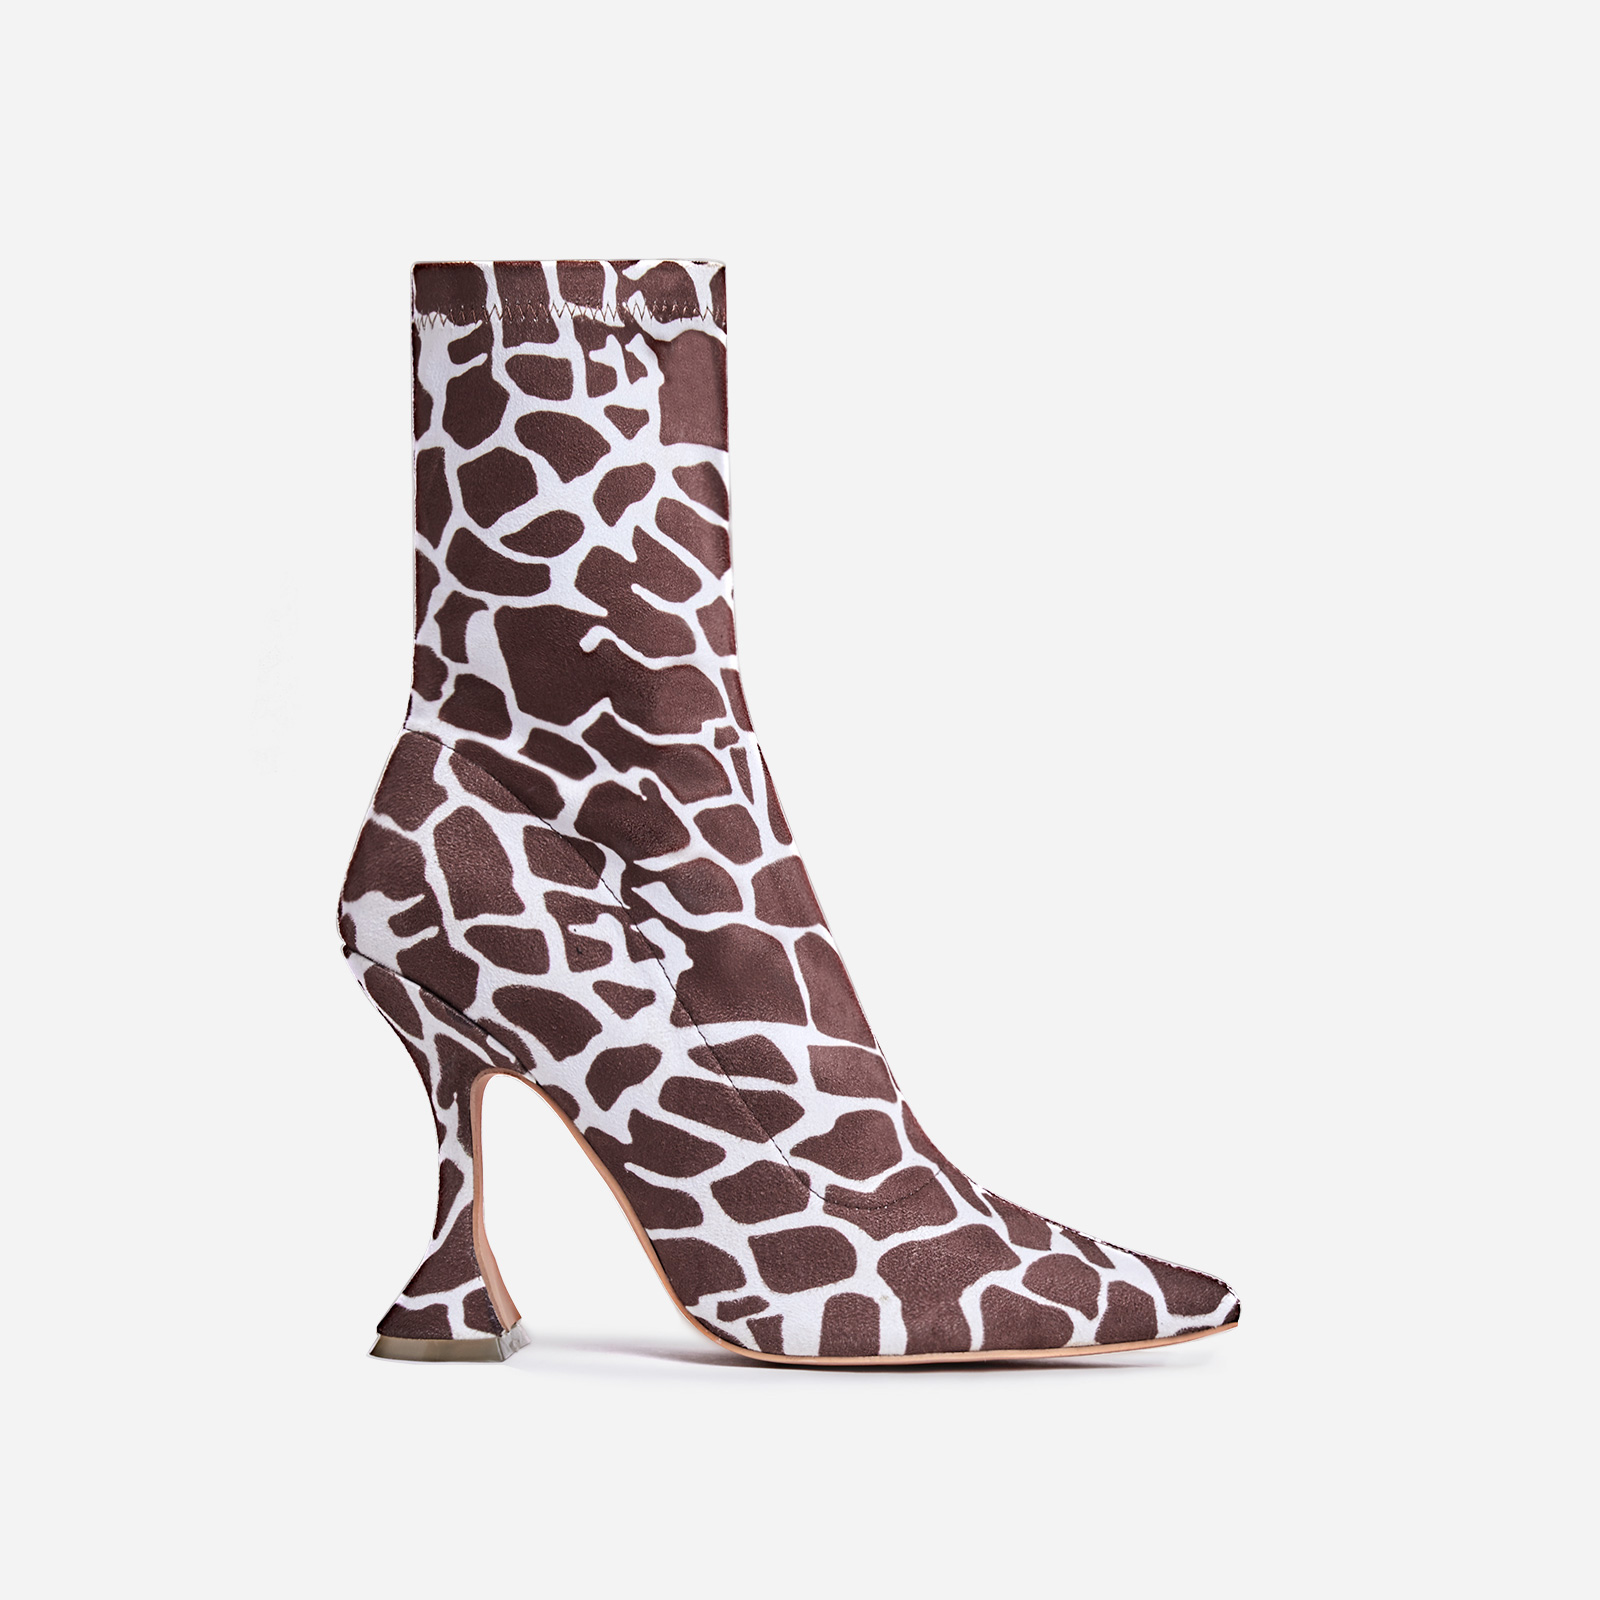 Flore Pyramid Heel Ankle Boot In Giraffe Print Faux Suede